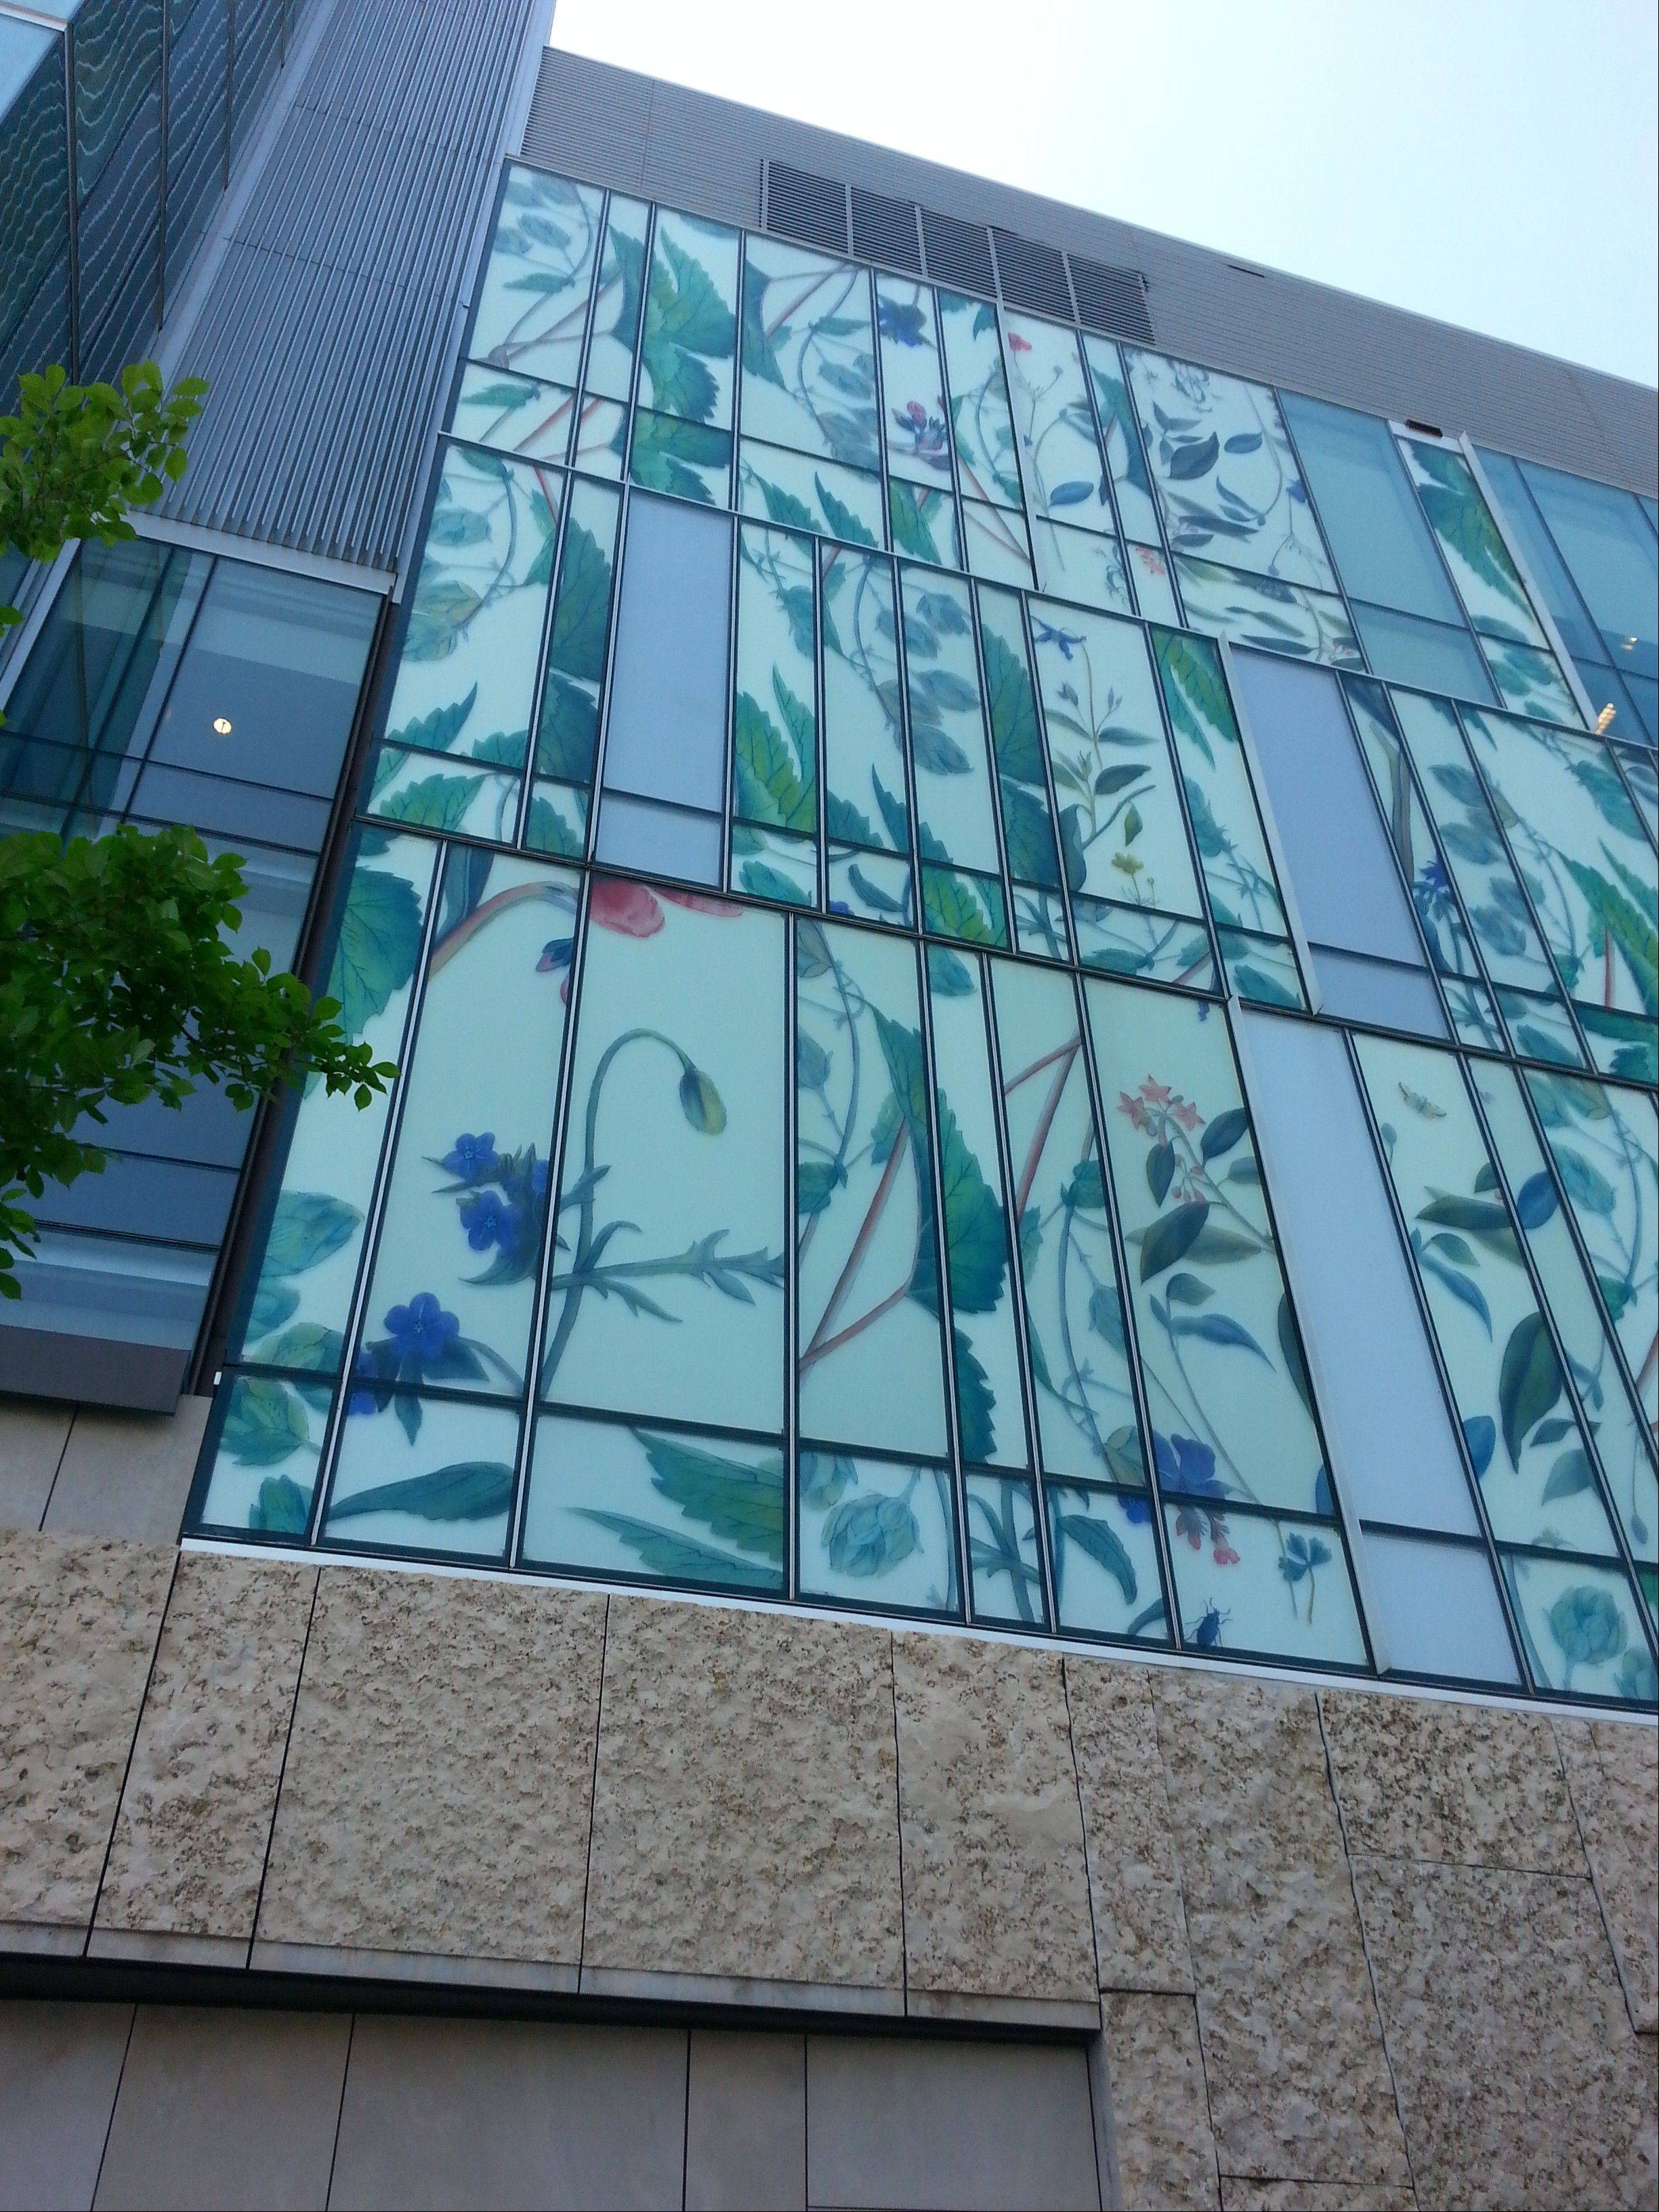 A a bird-friendly design at the School of Pharmacy at the University of Waterloo in Ontario, Canada uses a variety of different materials in addition to glass, including panels depicting plants.